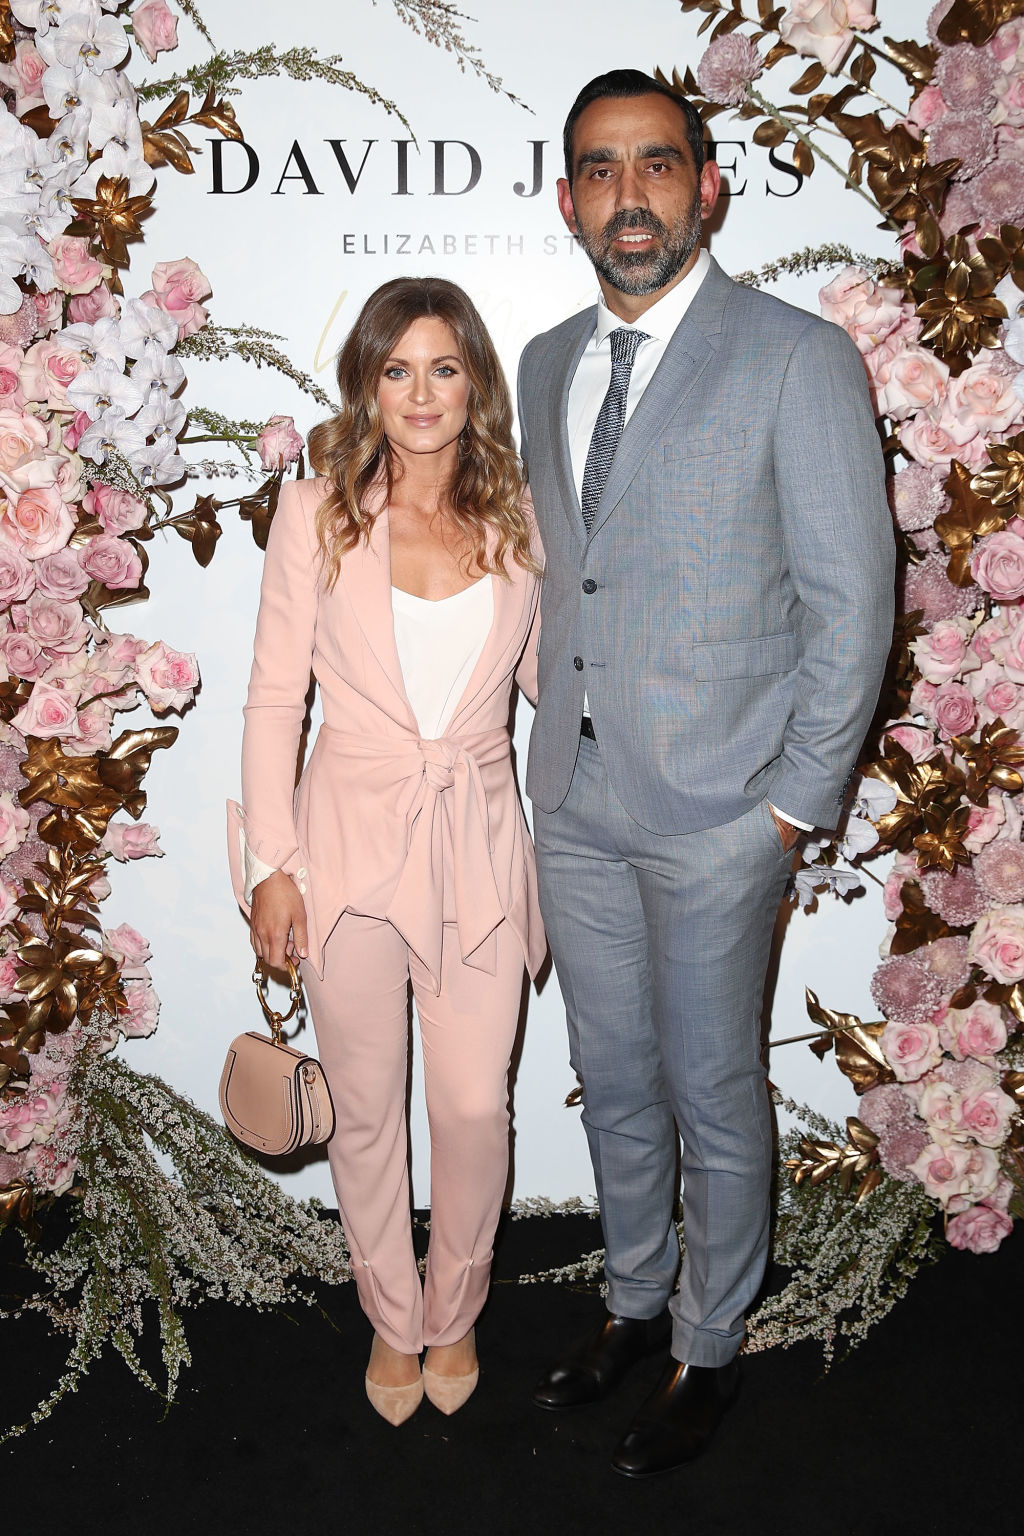 SYDNEY, AUSTRALIA - OCTOBER 04: Natalie Croker and Adam Goodes attend the David Jones luxury shoe floor launch party at David Jones Elizabeth Street Store on October 4, 2018 in Sydney, Australia. (Photo by Brendon Thorne/Getty Images for David Jones)  Adam Goodes and wife Natalie Crocker at the opening of David Jones 7th floor.